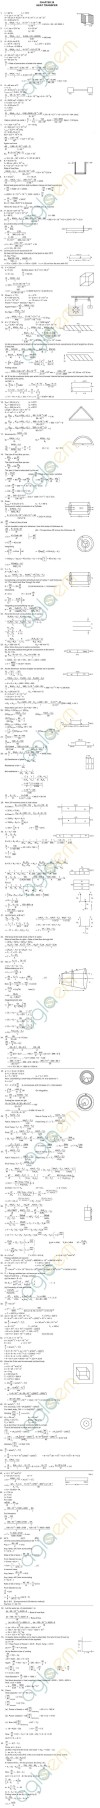 HC Verma Solutions: Chapter 28 - Heat Transfer